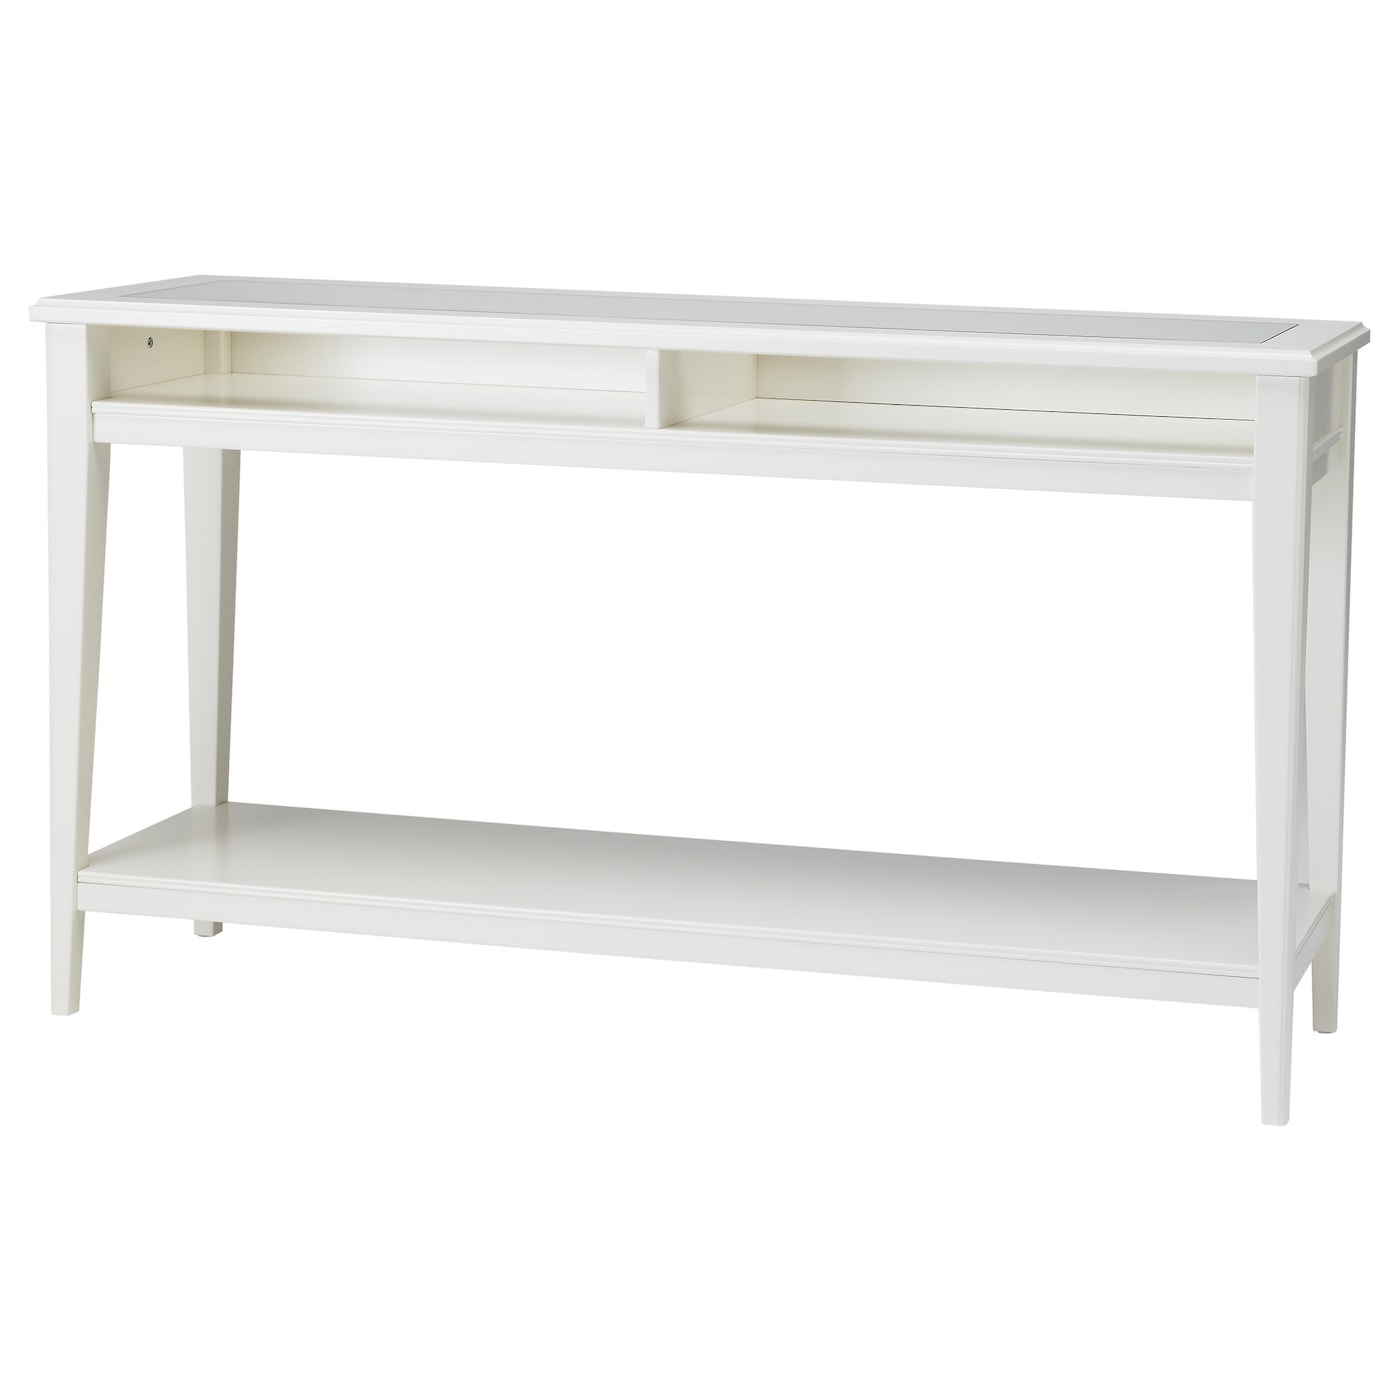 liatorp console table white glass 133 x 37 cm ikea. Black Bedroom Furniture Sets. Home Design Ideas